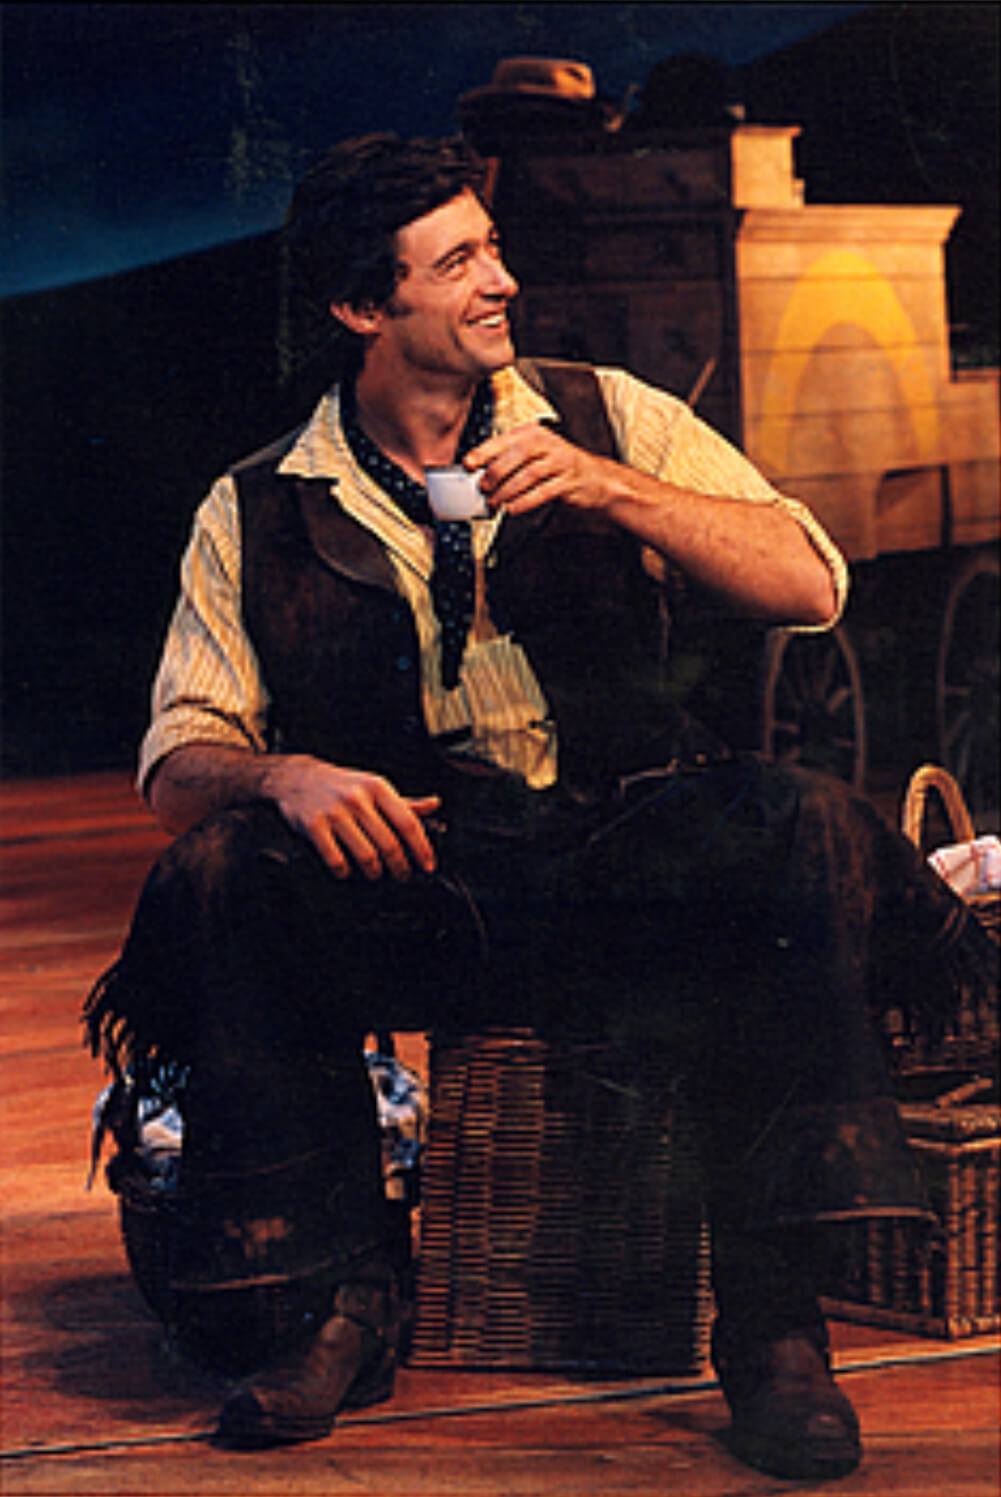 Curly (Hugh Jackman) holding his small cup of coffee while sitting and gazing at somebody on his left.